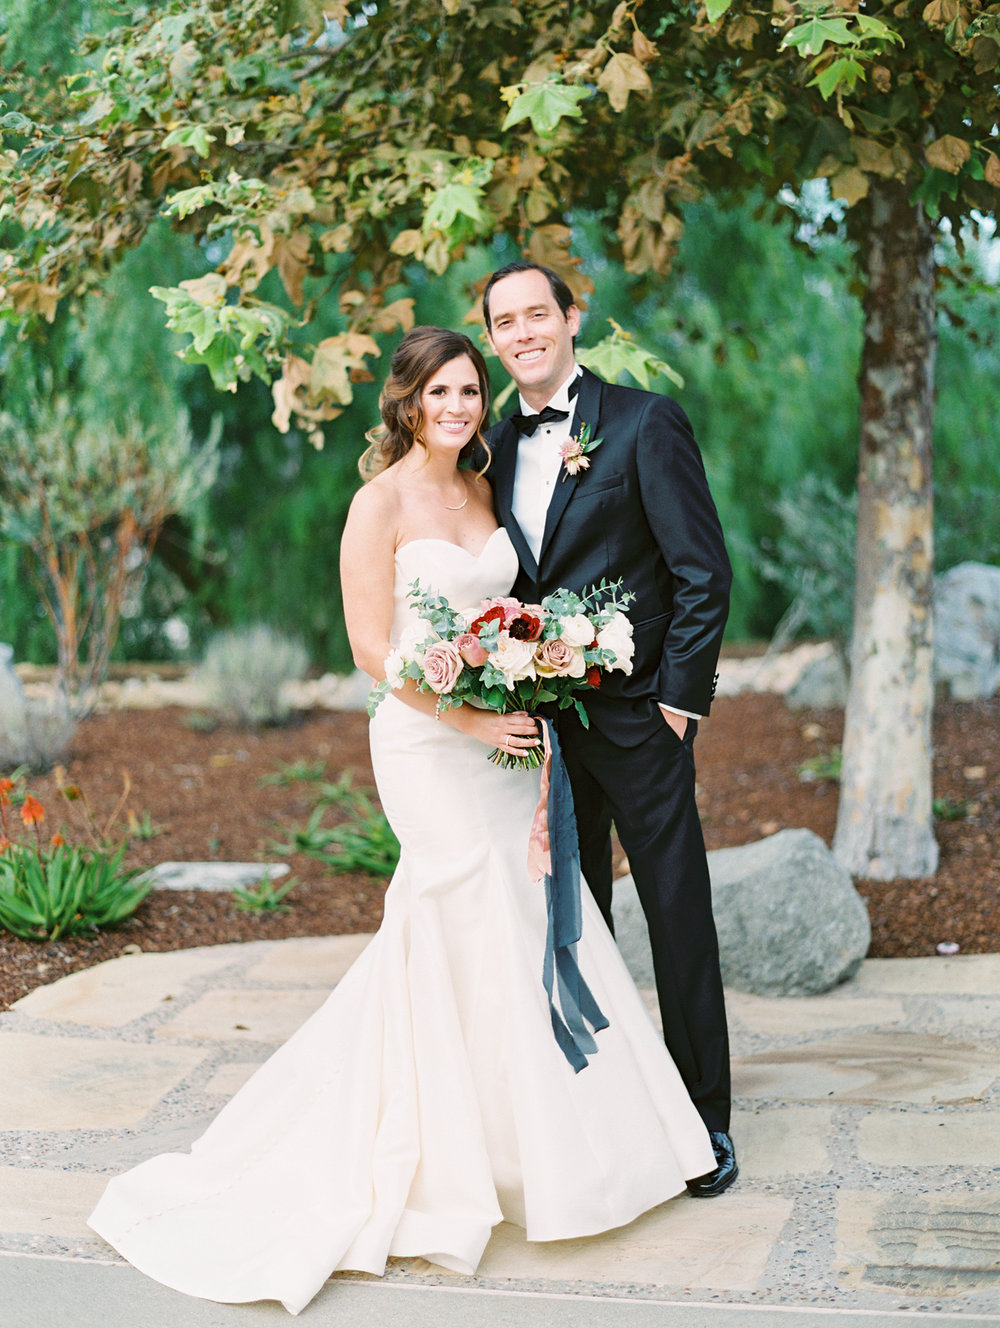 Michelle Garibay Events | Cavin Elizabeth Photography | Green Acre Campus Point Reception